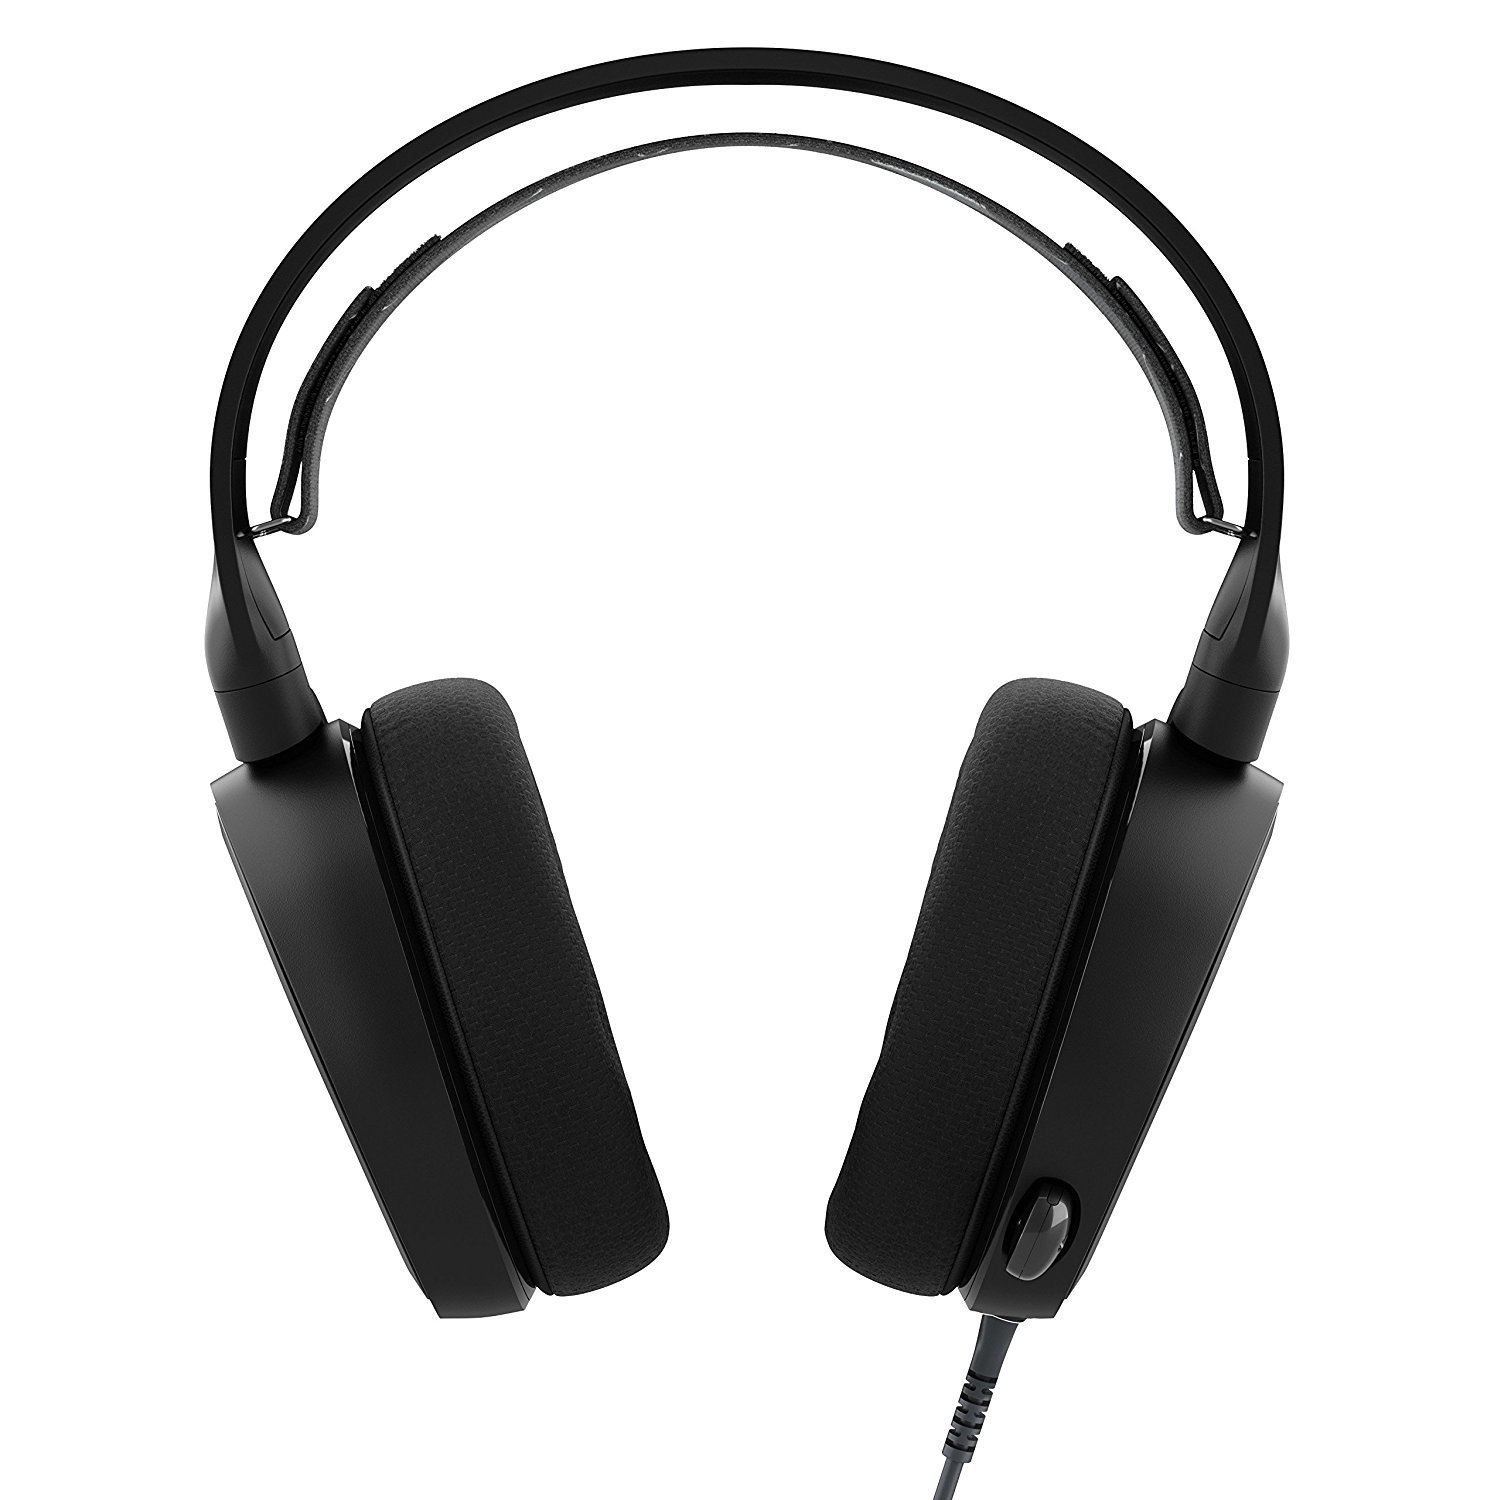 SteelSeries Arctis 3 Wired Gaming Headset (Black) for PC Games image